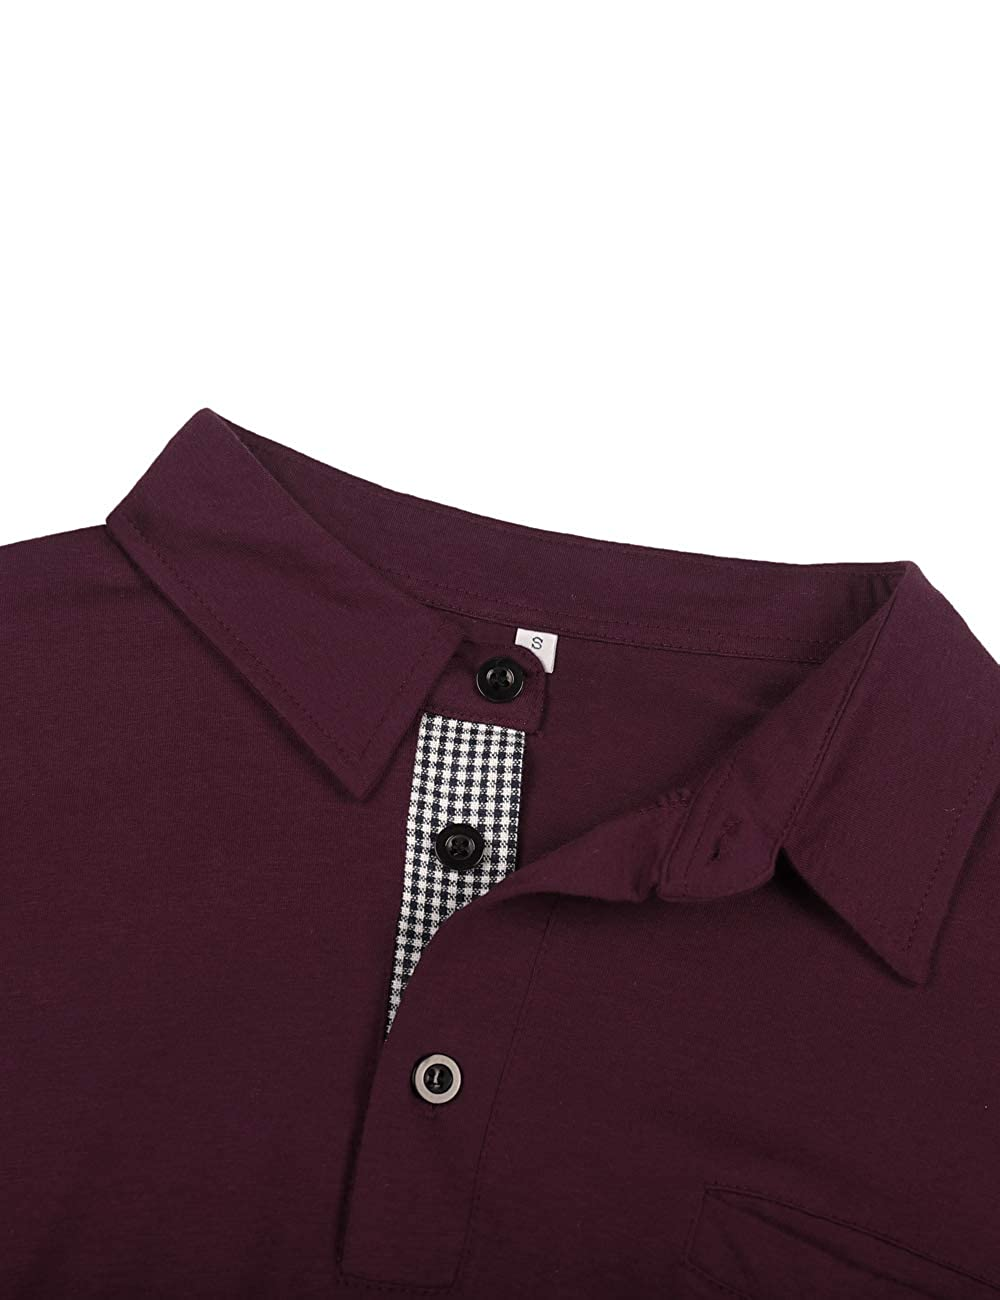 poriff Mens Long Sleeve Polo Shirts Solid 3 Botton Cotton T Shirts with Pocket